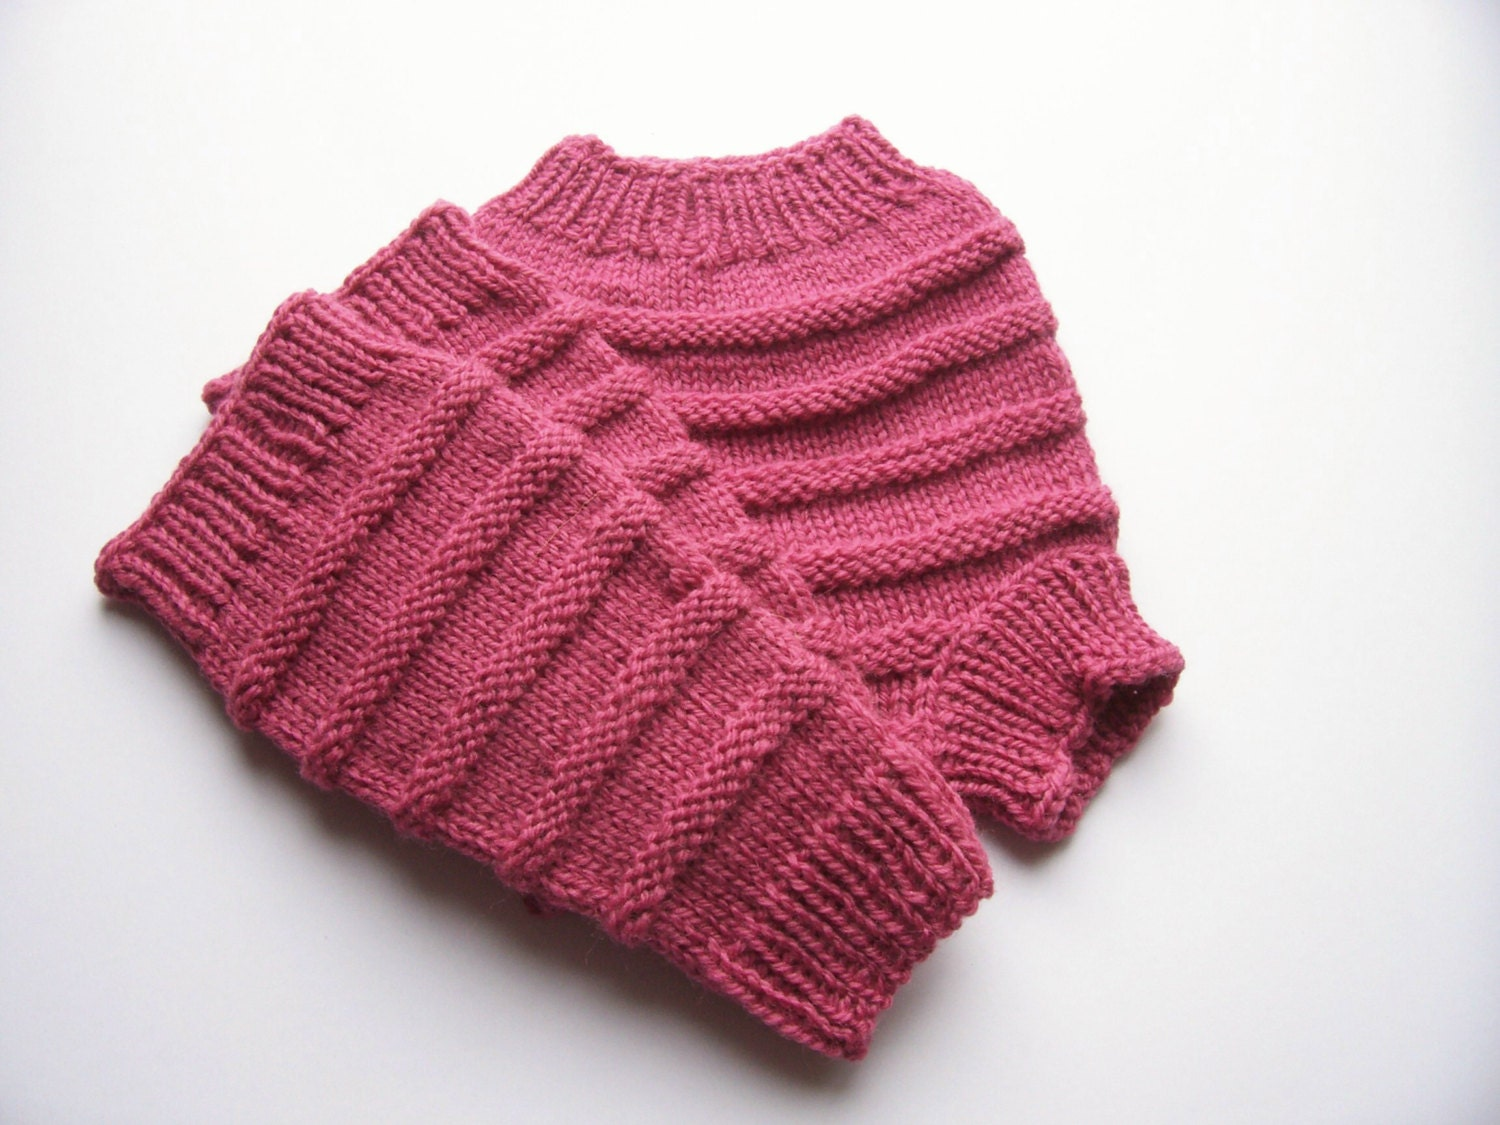 Knitting Pattern For Wool Diaper Covers : Hand Knitted Wool Cloth Diaper Cover Soaker with matching Leg